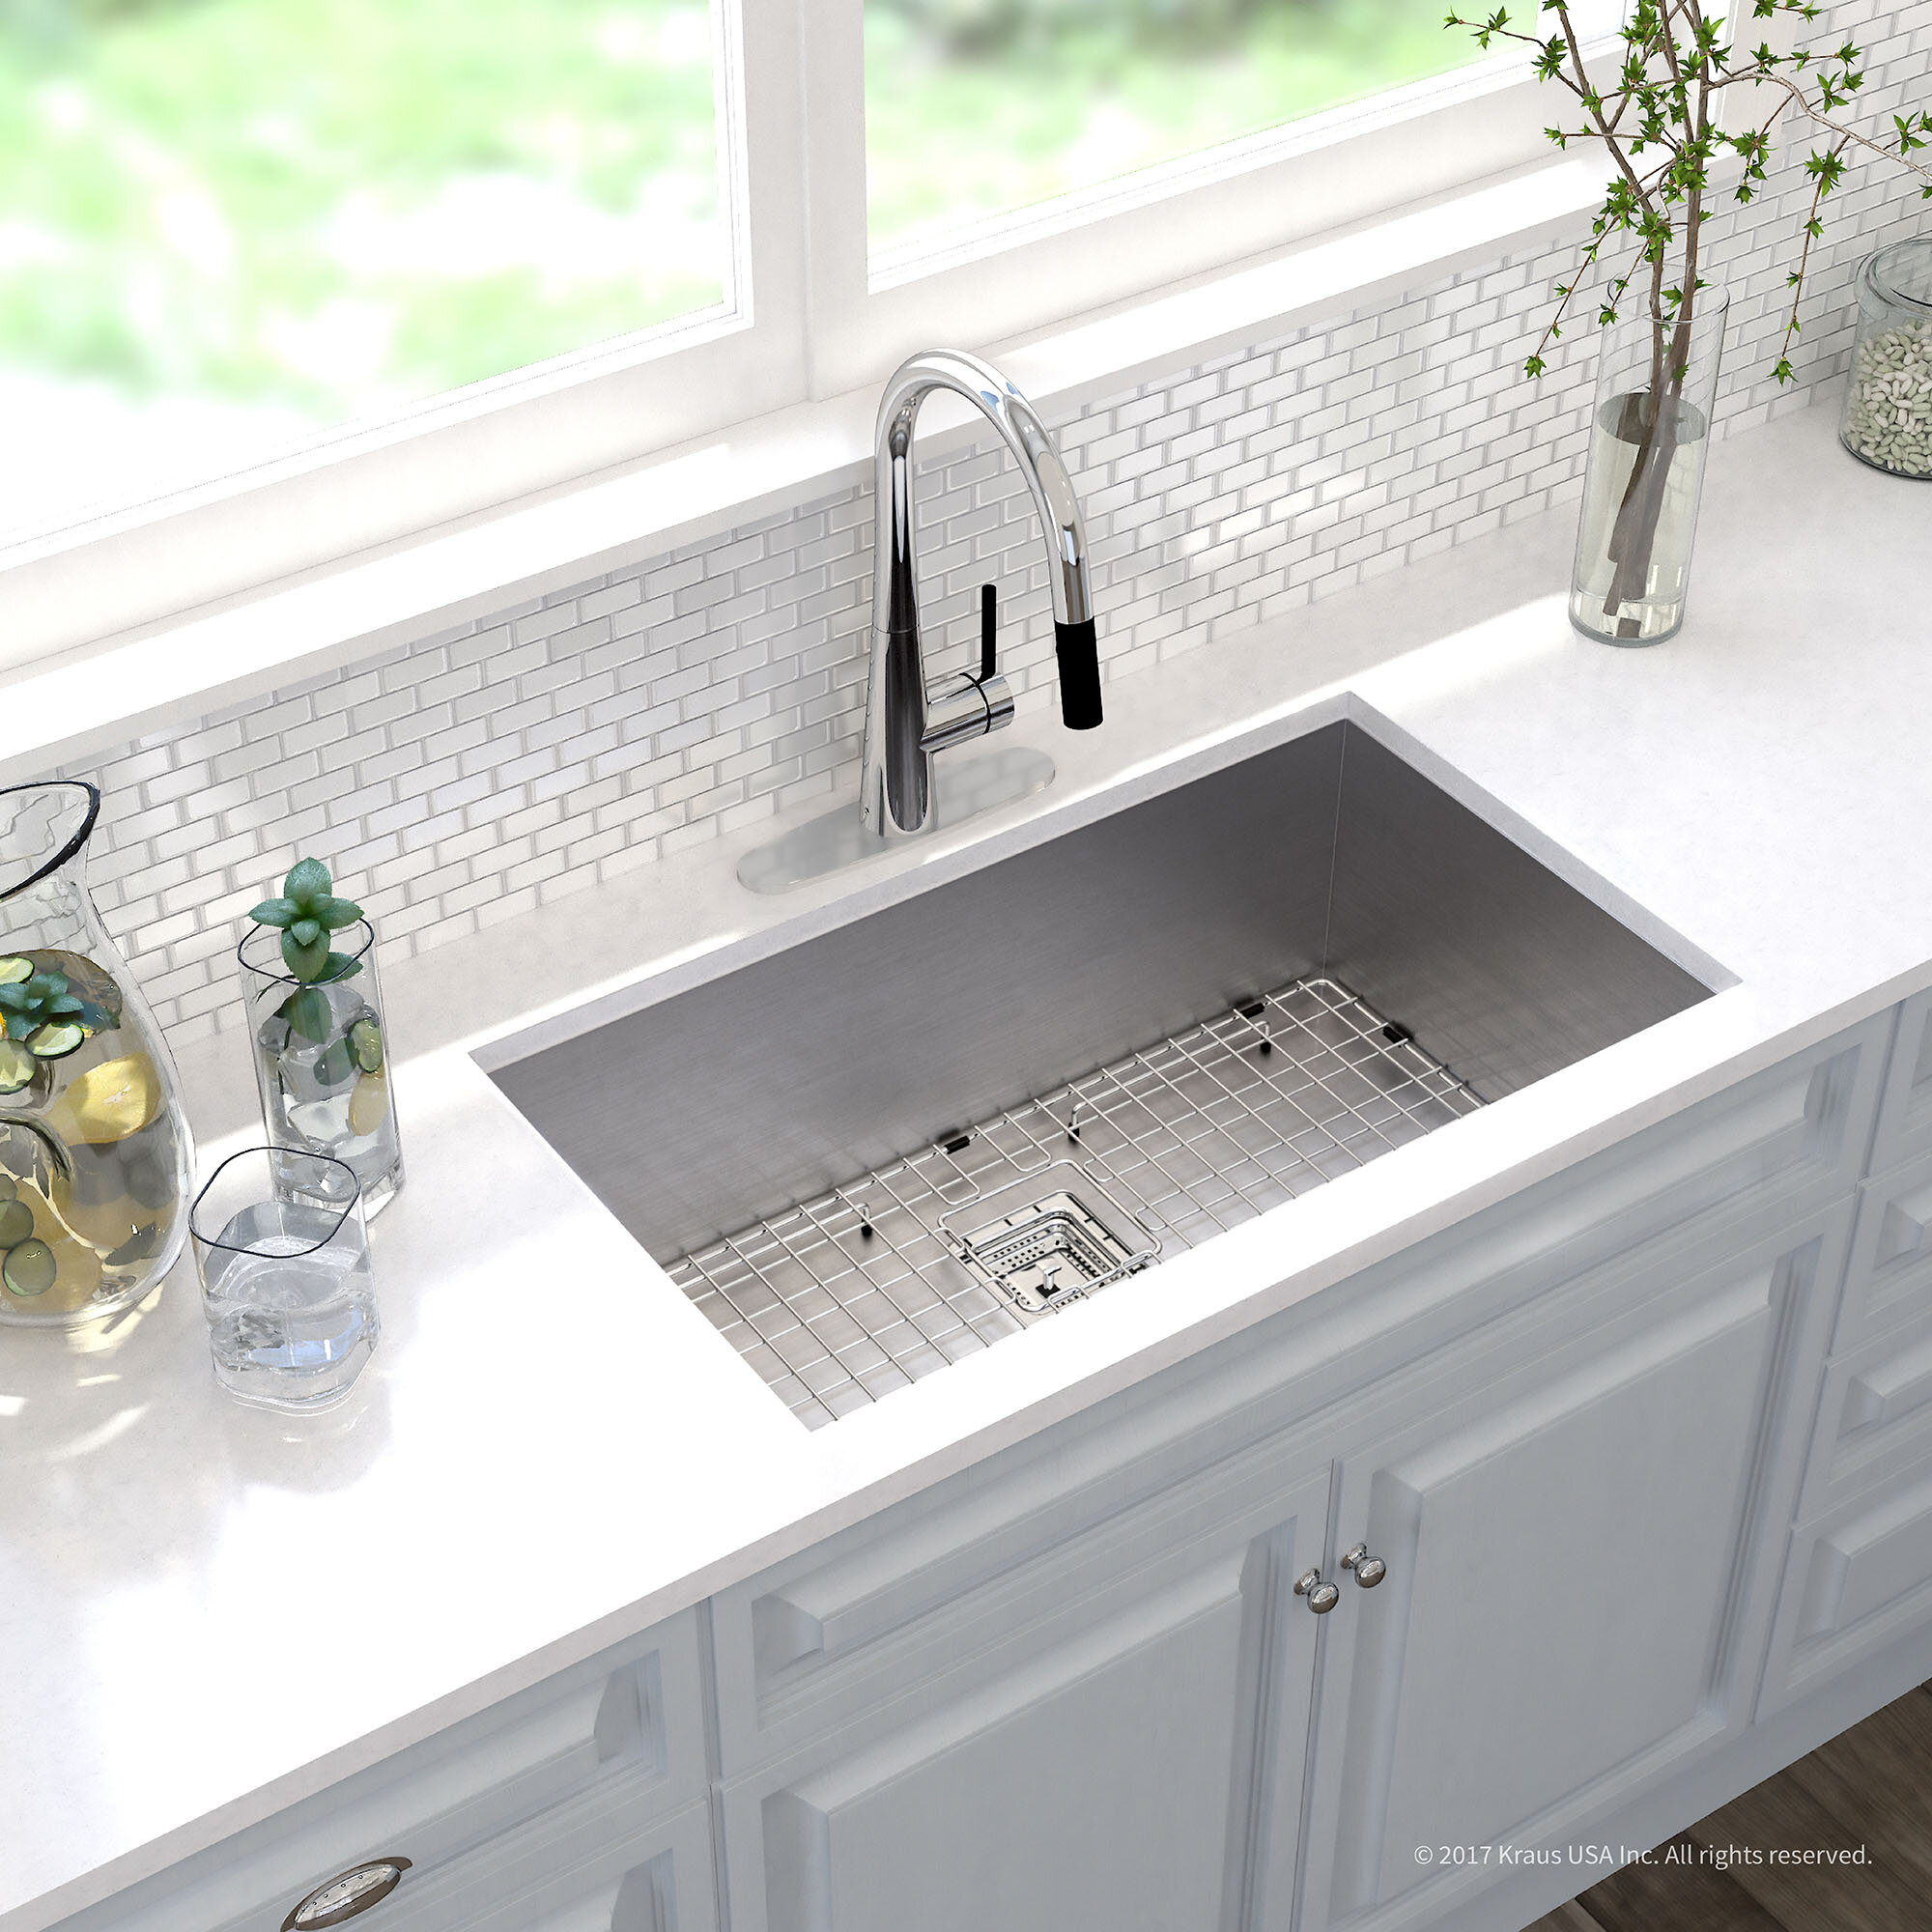 Kraus Pax 31 Quot X 18 Quot Undermount Kitchen Sink With Drain